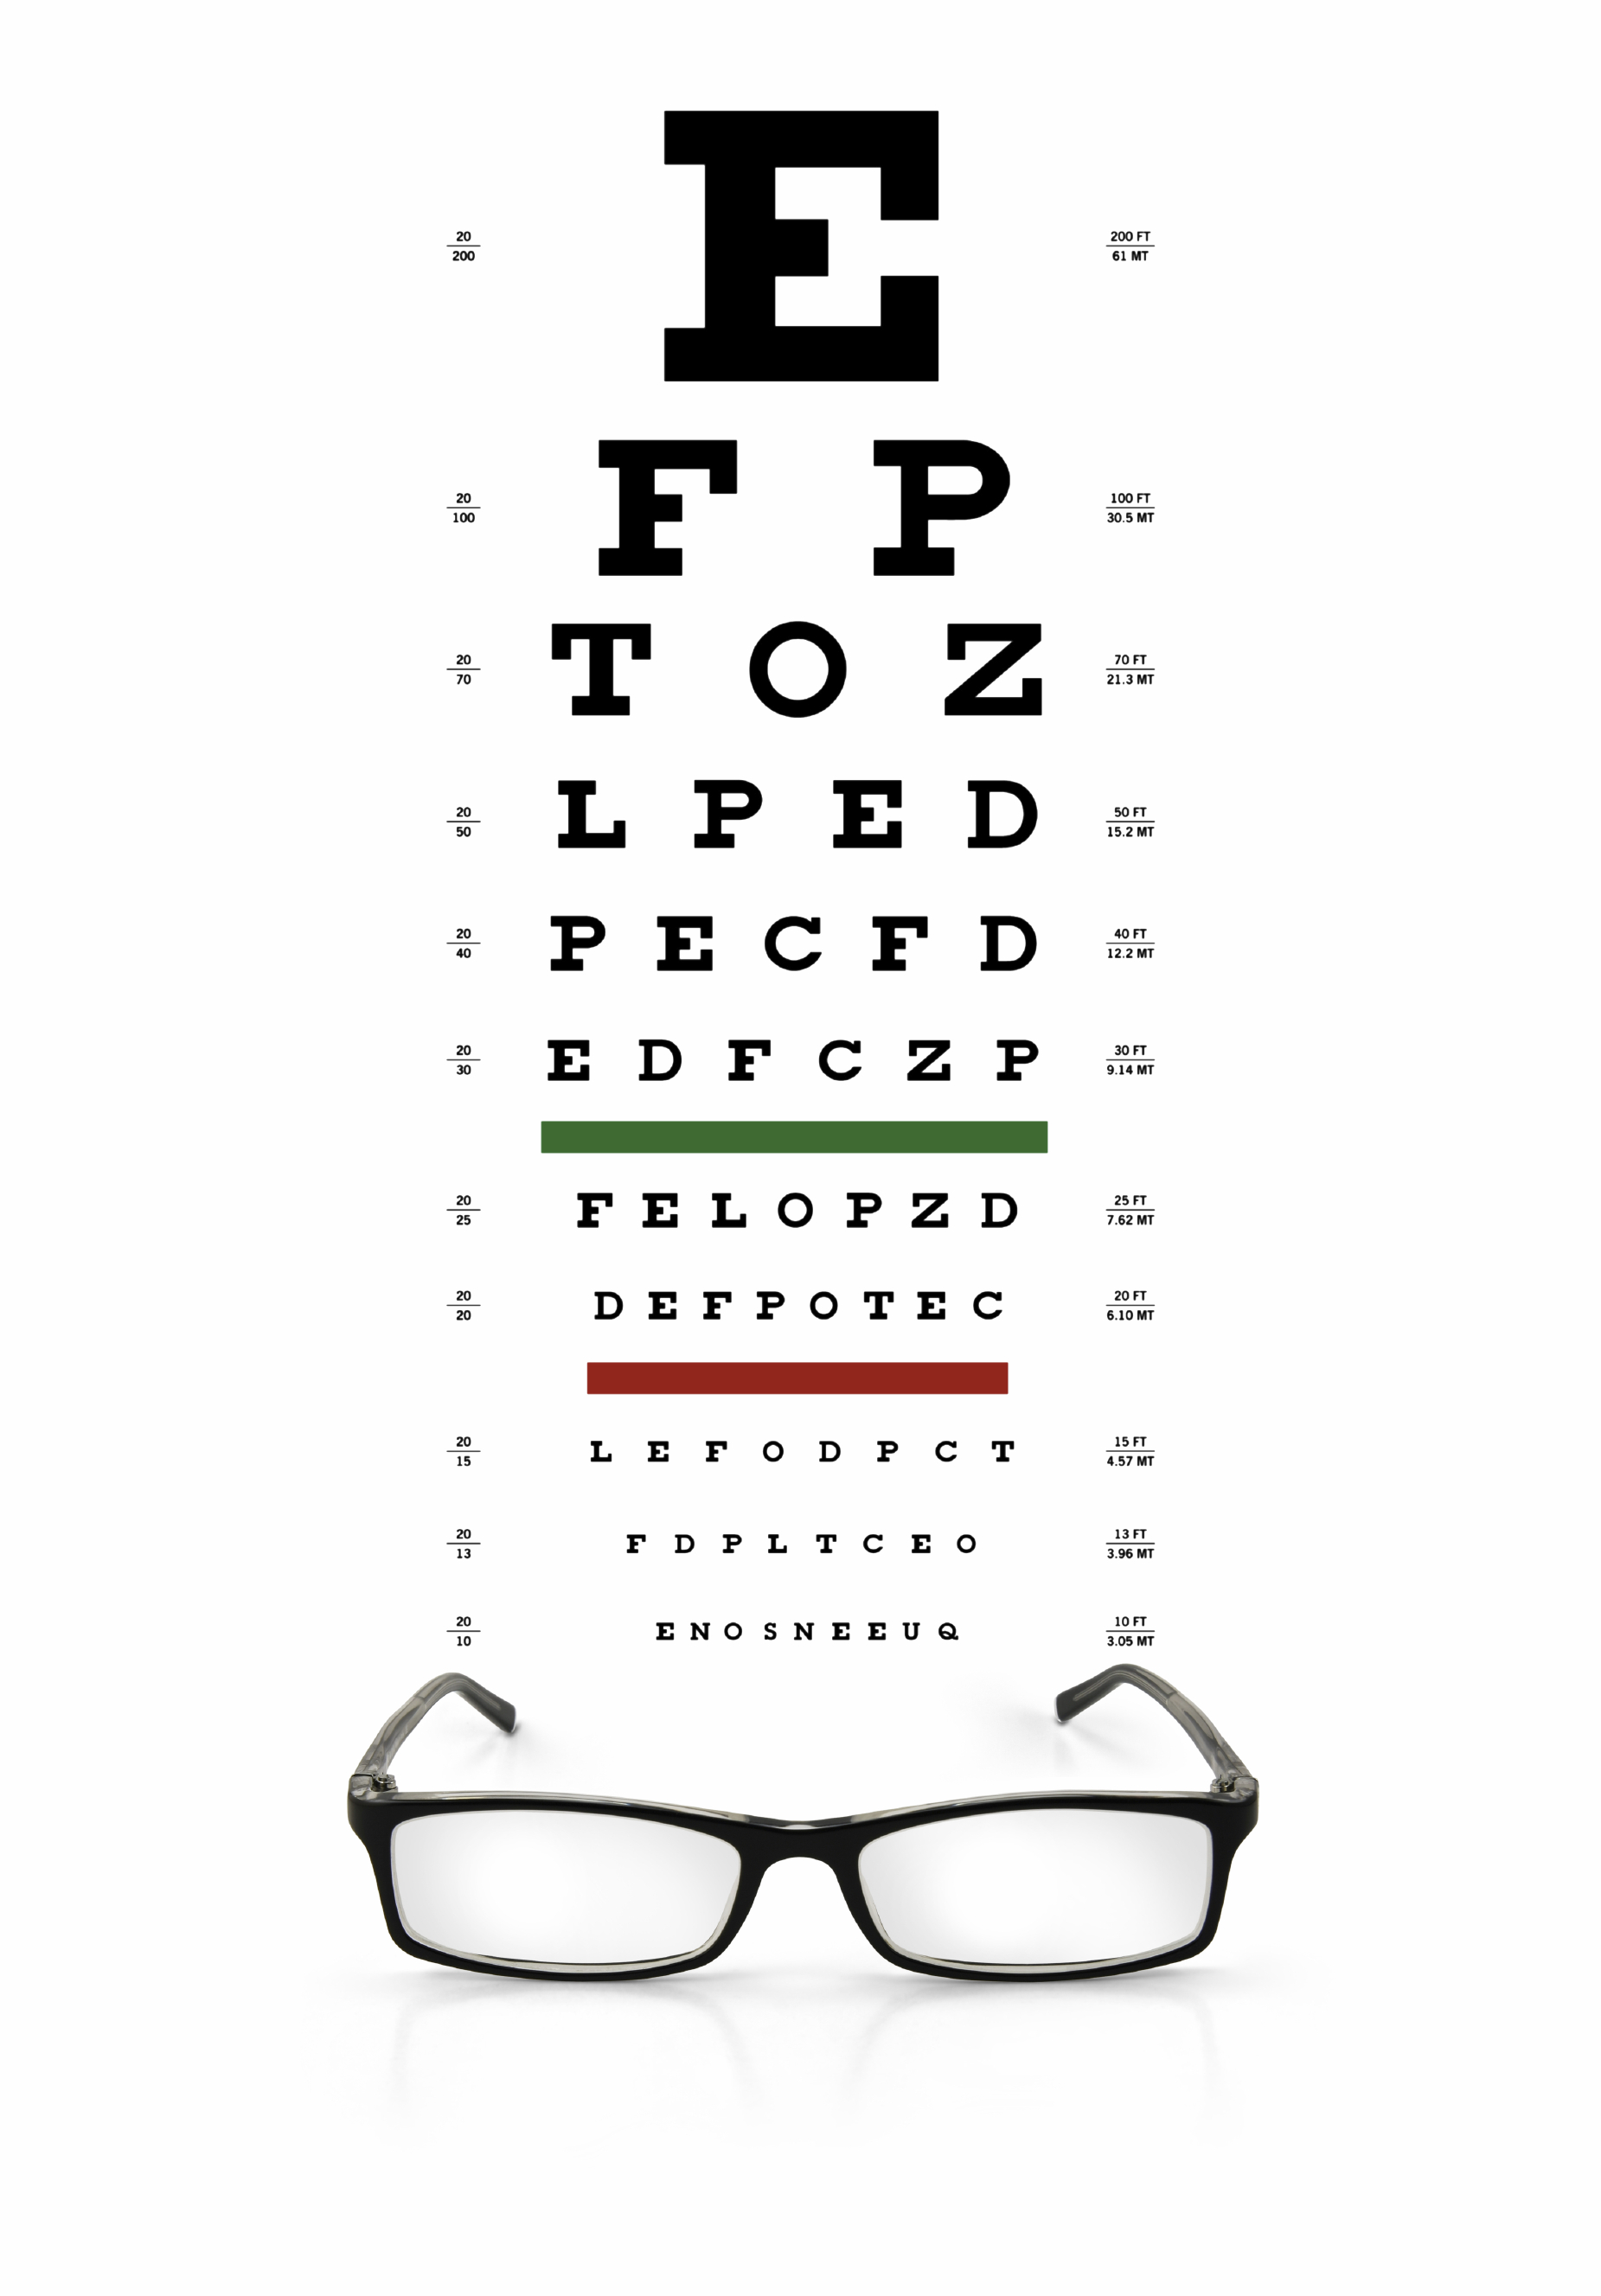 Vision minus 1 - what does it mean, can Myopia be cured - is it minus or plus 81